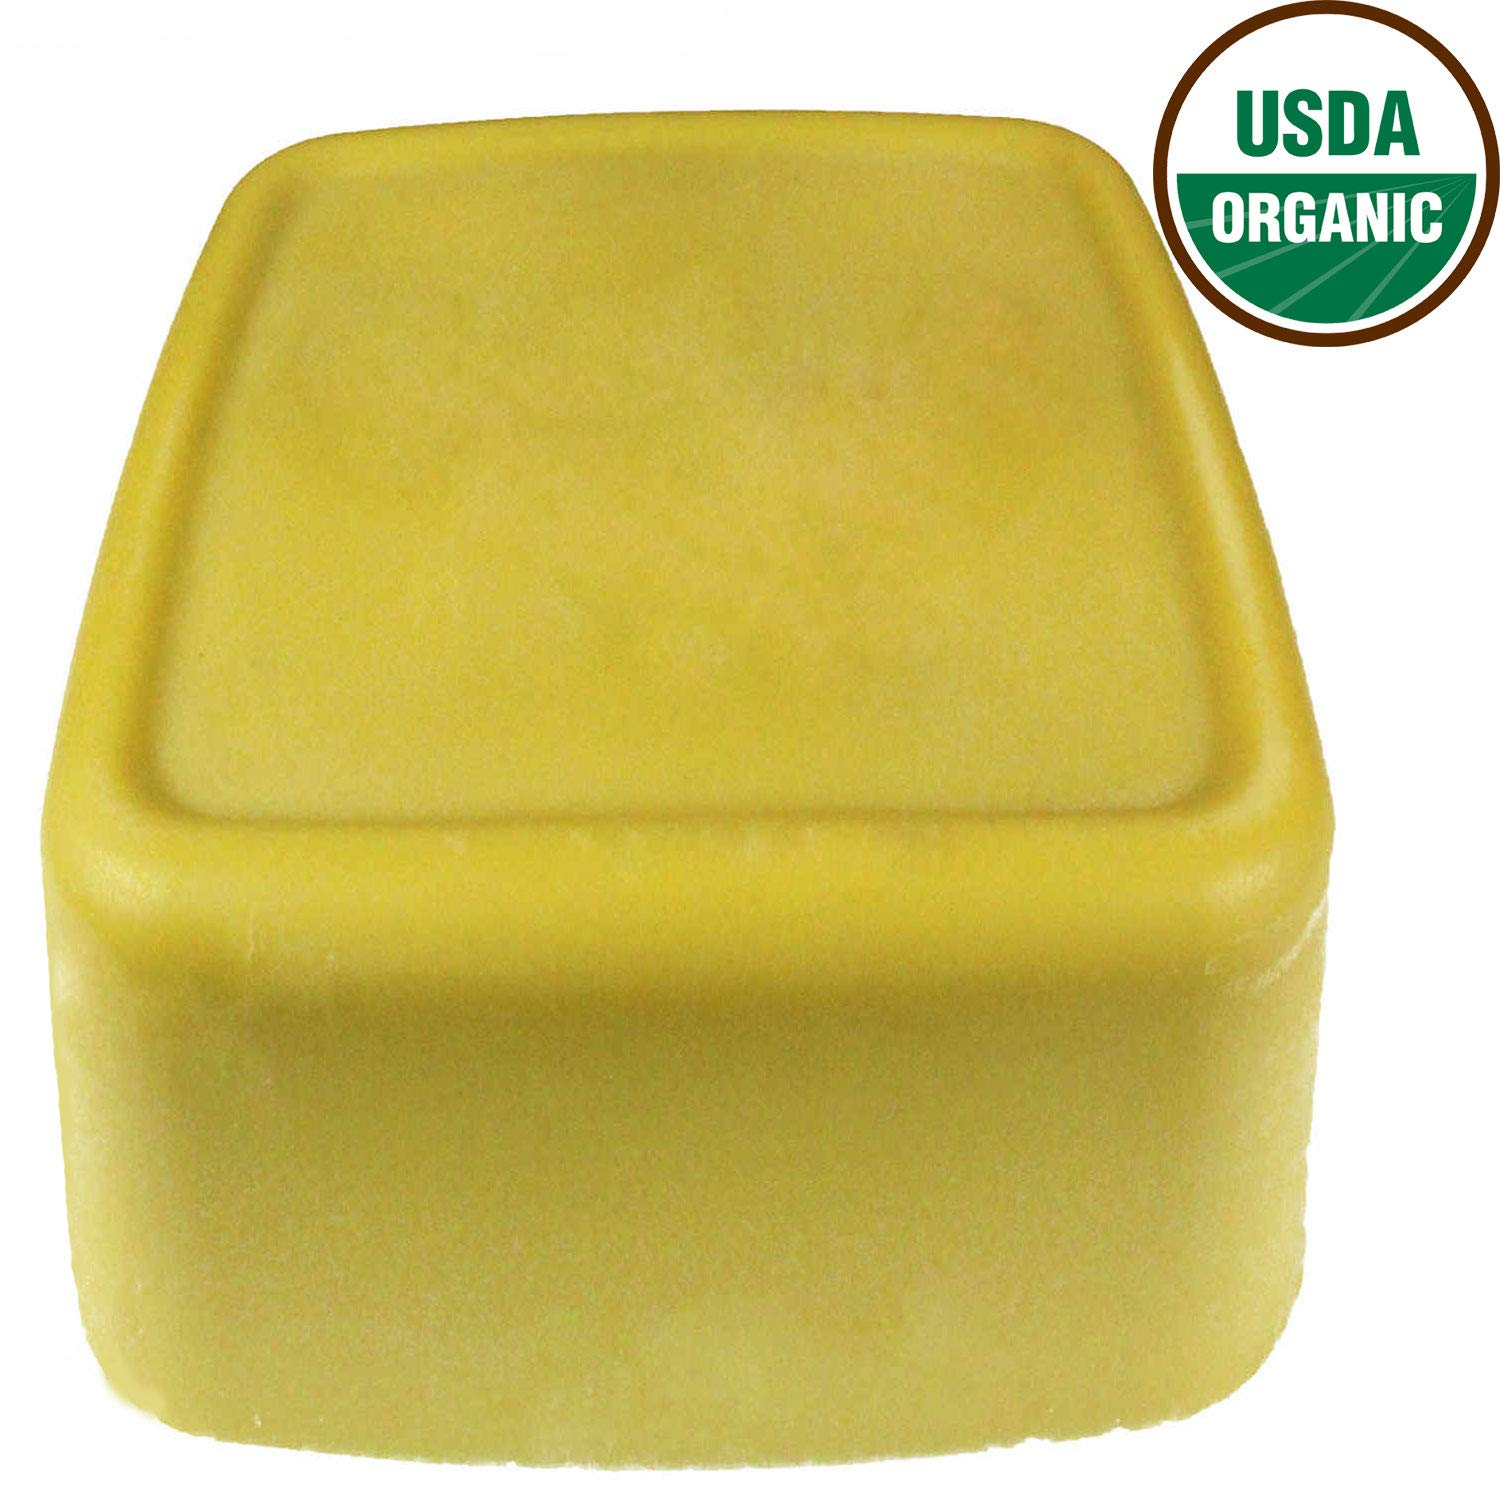 Organic Cocoa Butter 22 lb, USDA Certified Organic by Mary Tylor Naturals, Premium Grade Raw Unrefined Un Deodorized Dominican Cacao Butter, Amazing Skin Nourishment, Great for Stretch Marks DIY